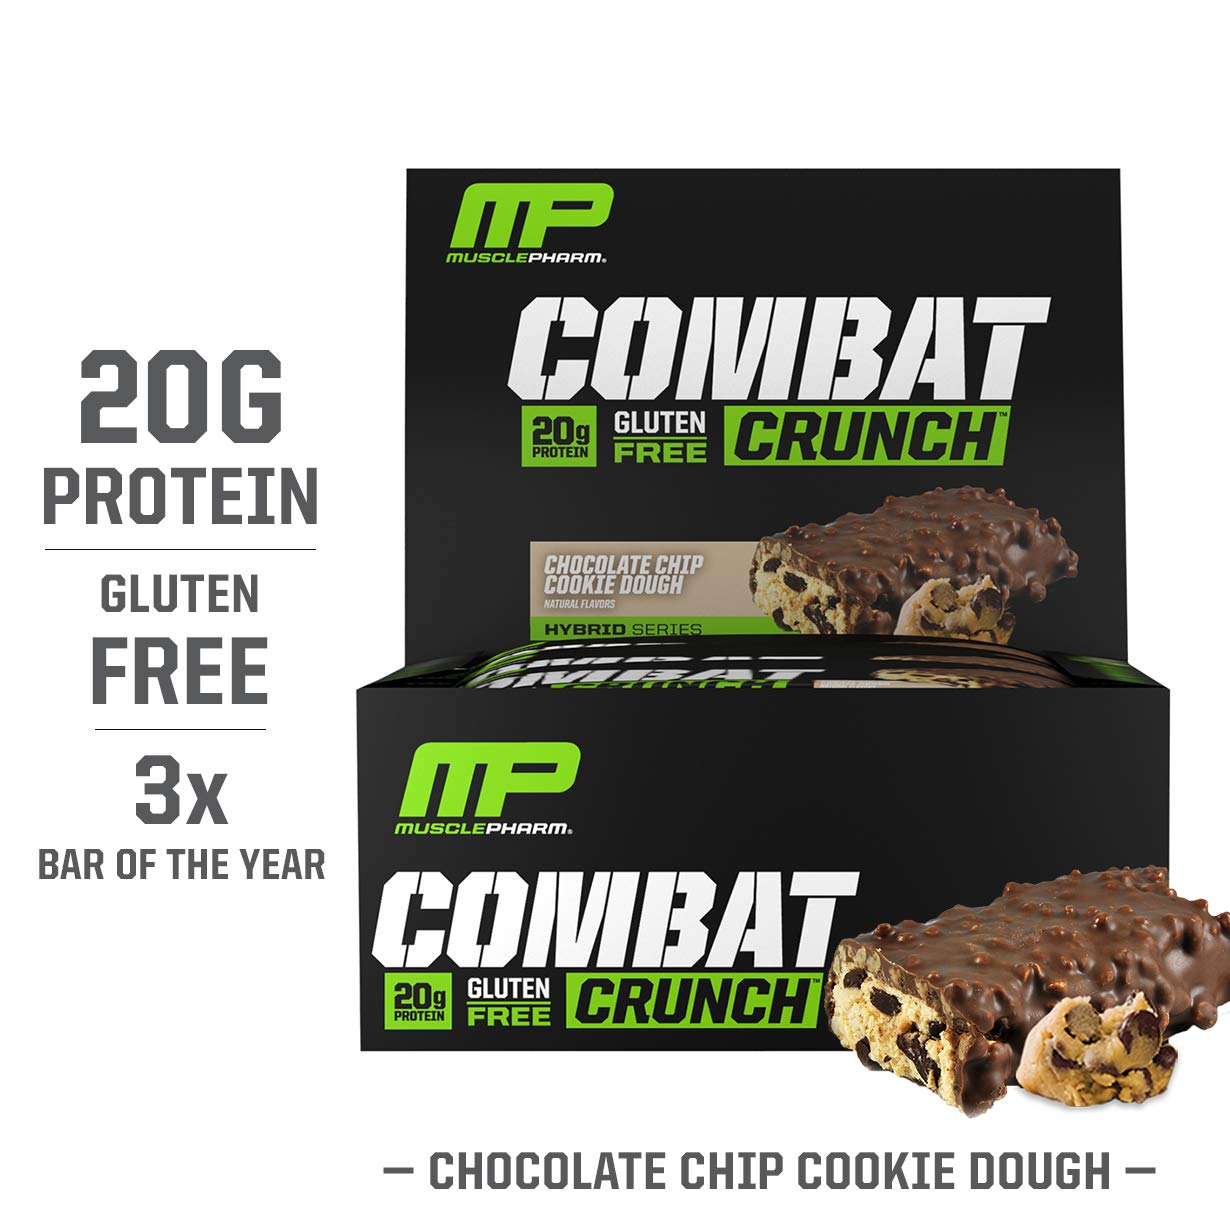 MusclePharm Combat Crunch Protein Bar, Multi-Layered Baked Bar, Gluten-Free Bars, 20 g Protein, Low-Sugar, Low-Carb, Gluten-Free, Chocolate Chip Cookie Dough Bars, 12 Servings by Muscle Pharm